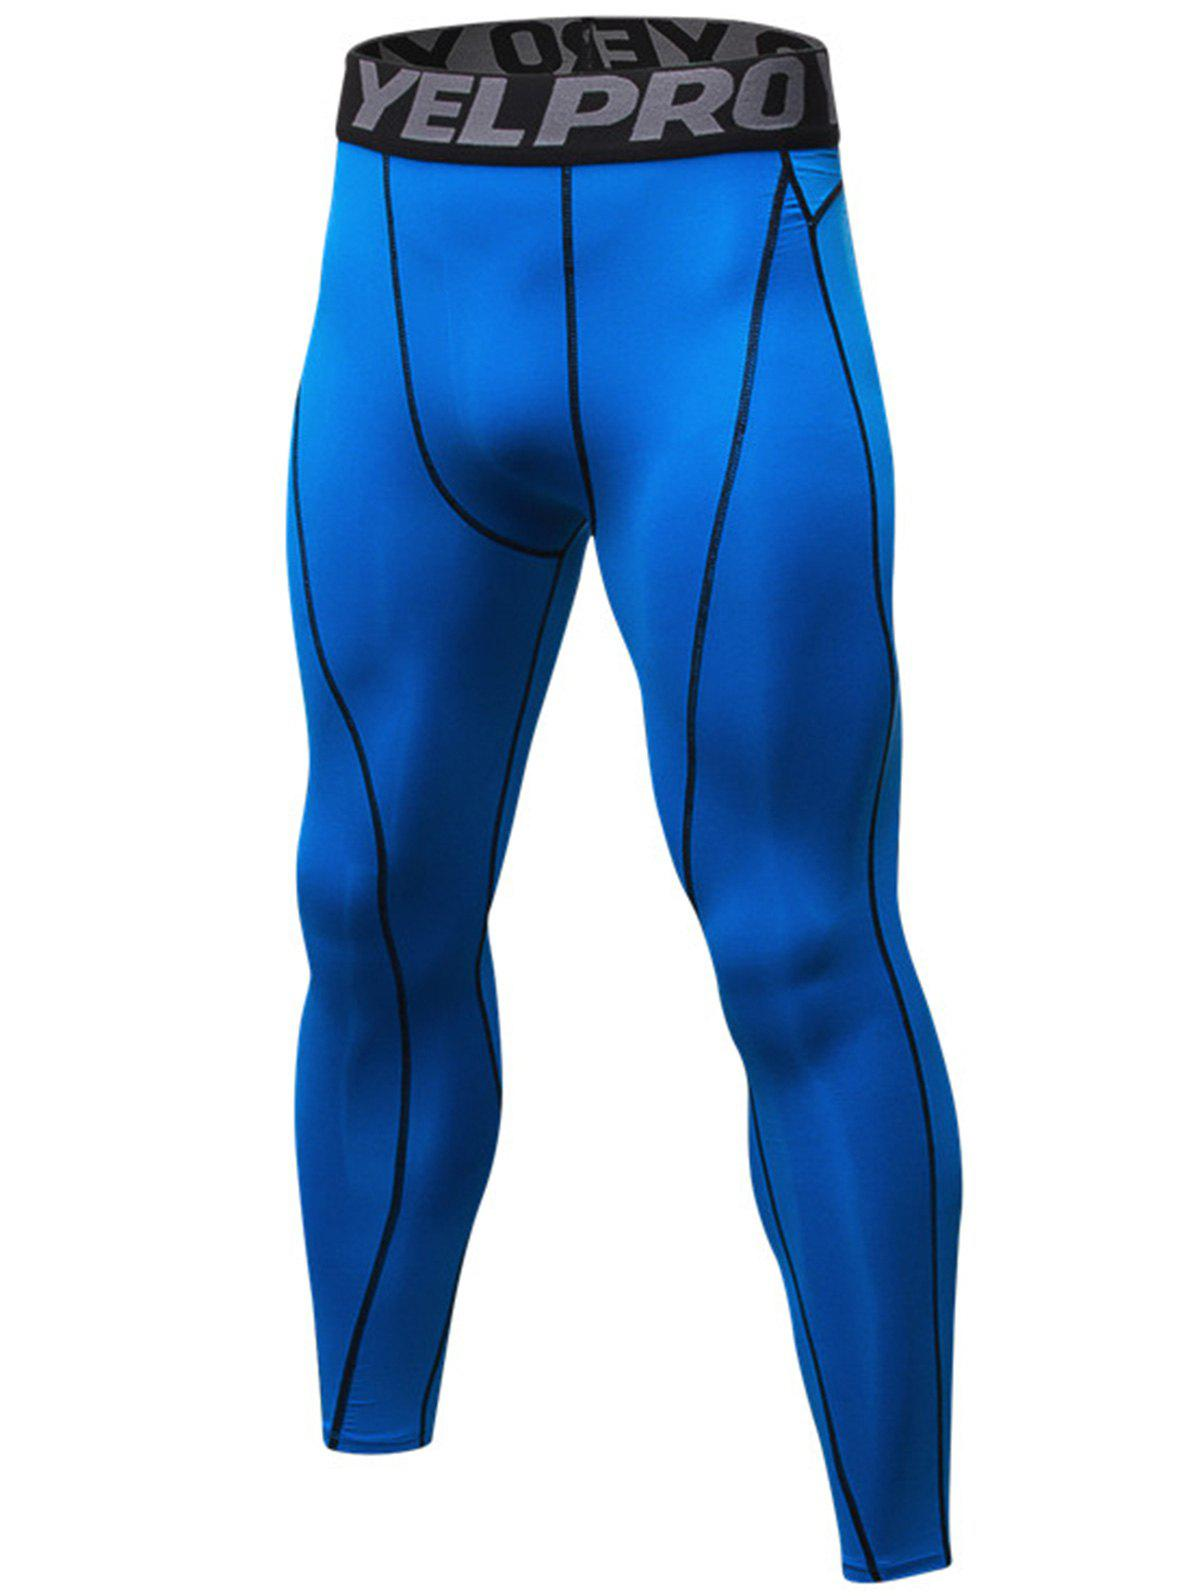 Fashion Linellae Stretchy Graphic Quick Dry Gym Pants